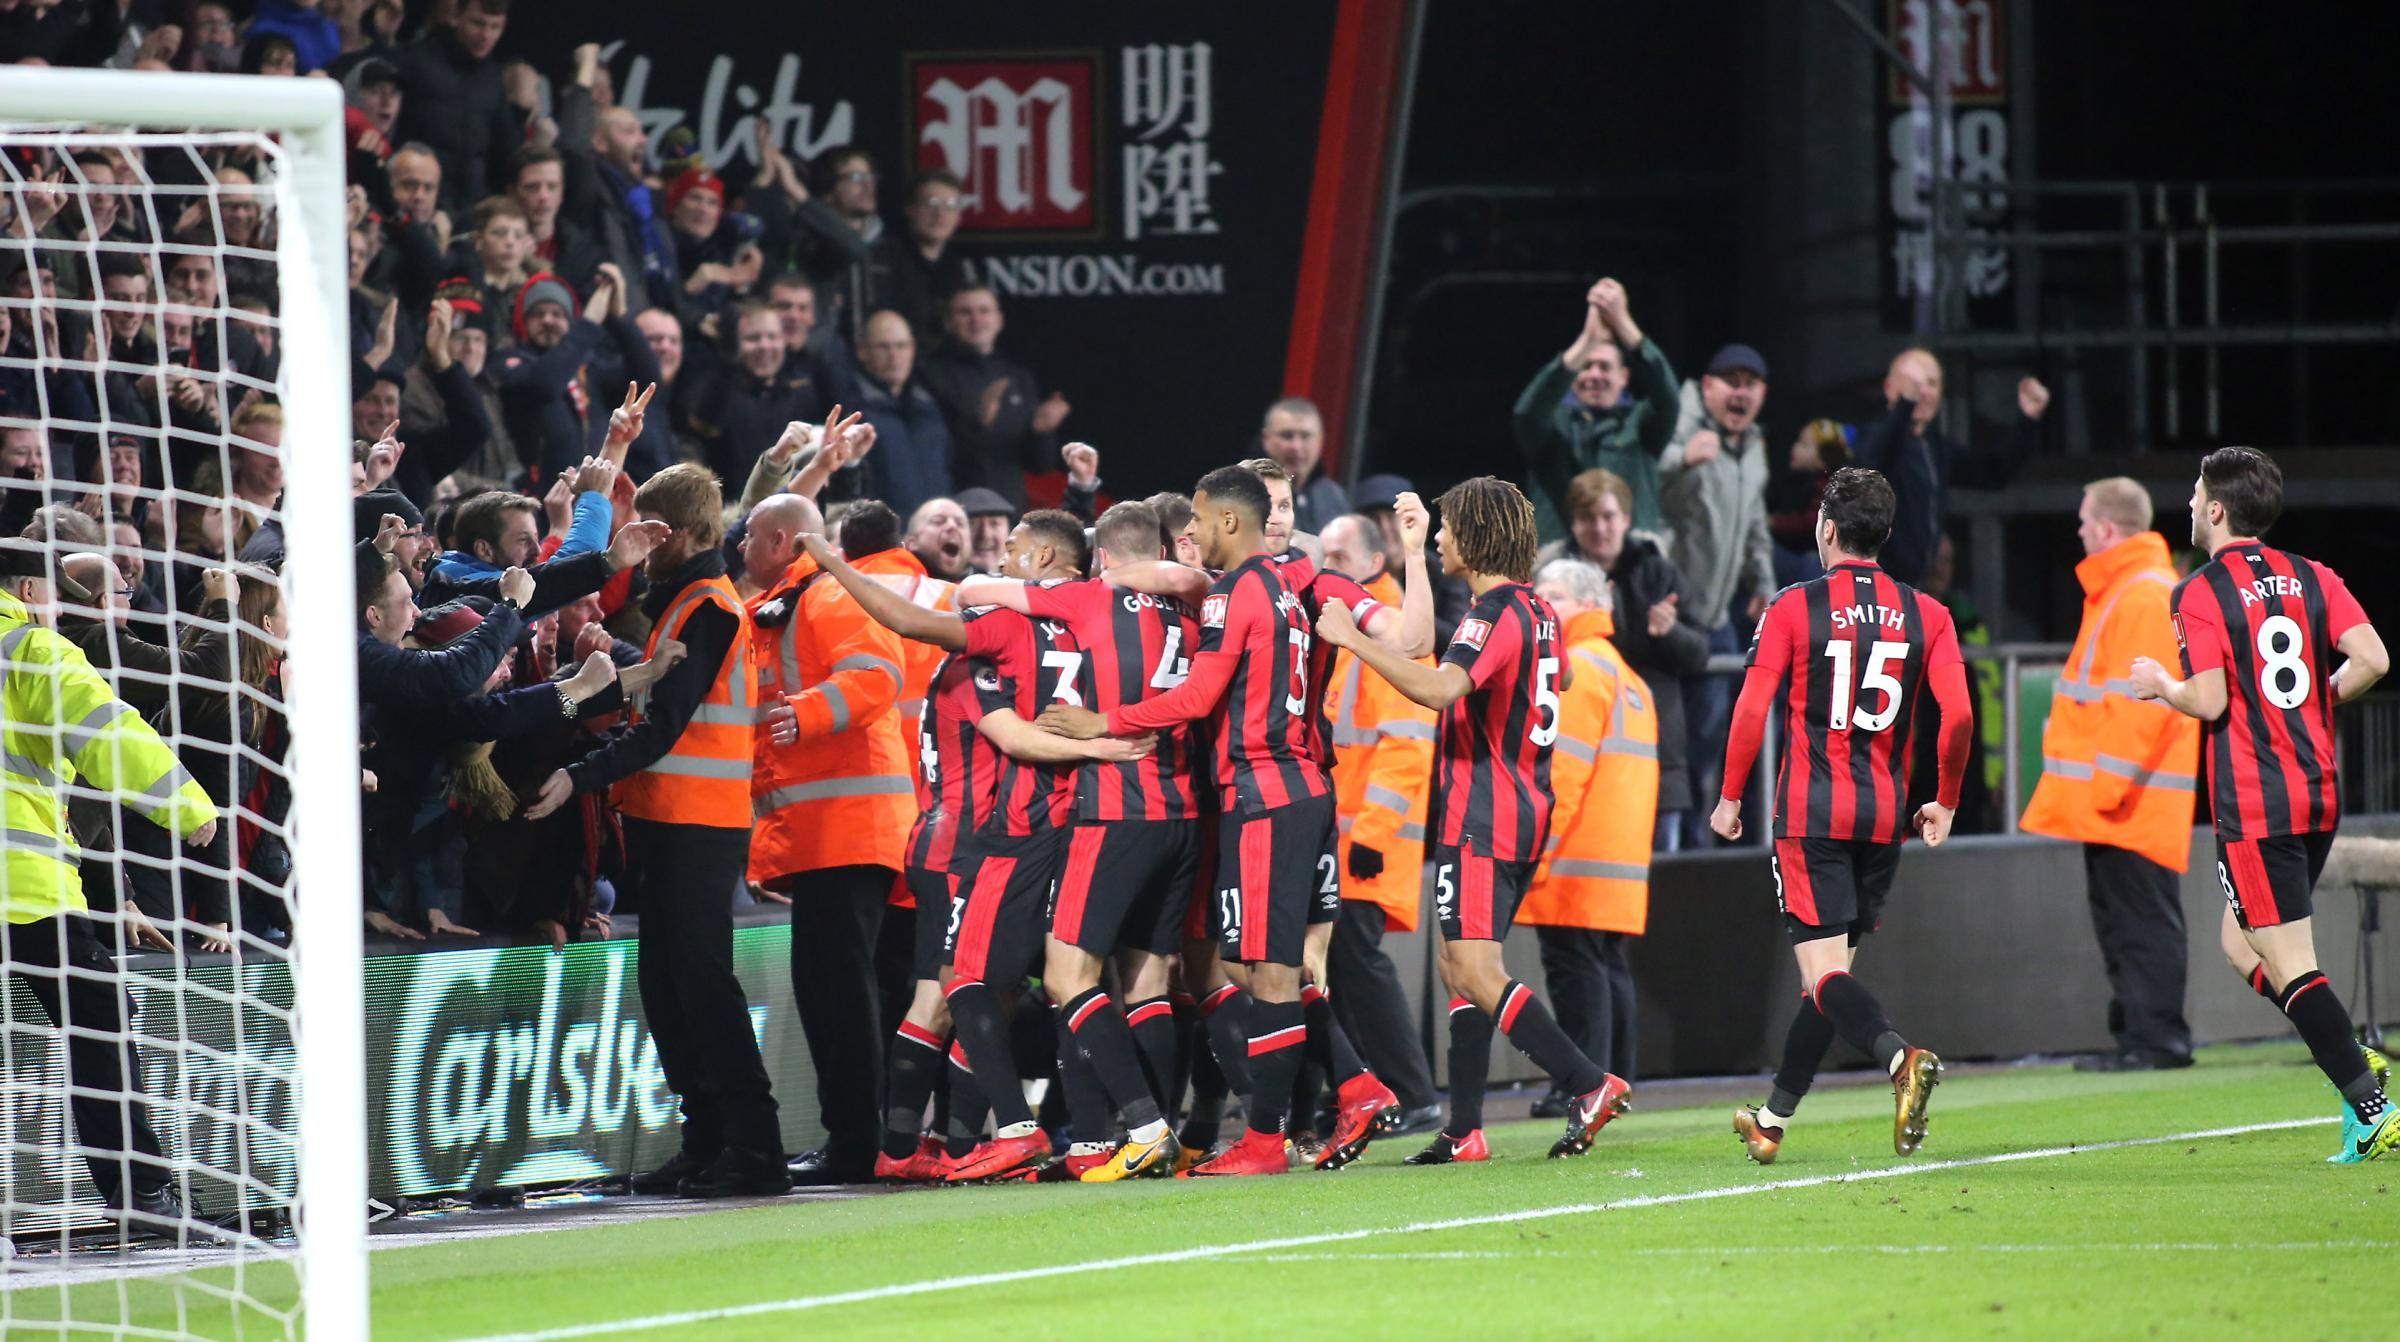 AFC Bournemouth v Everton in Premier league at Vitality Stadium..